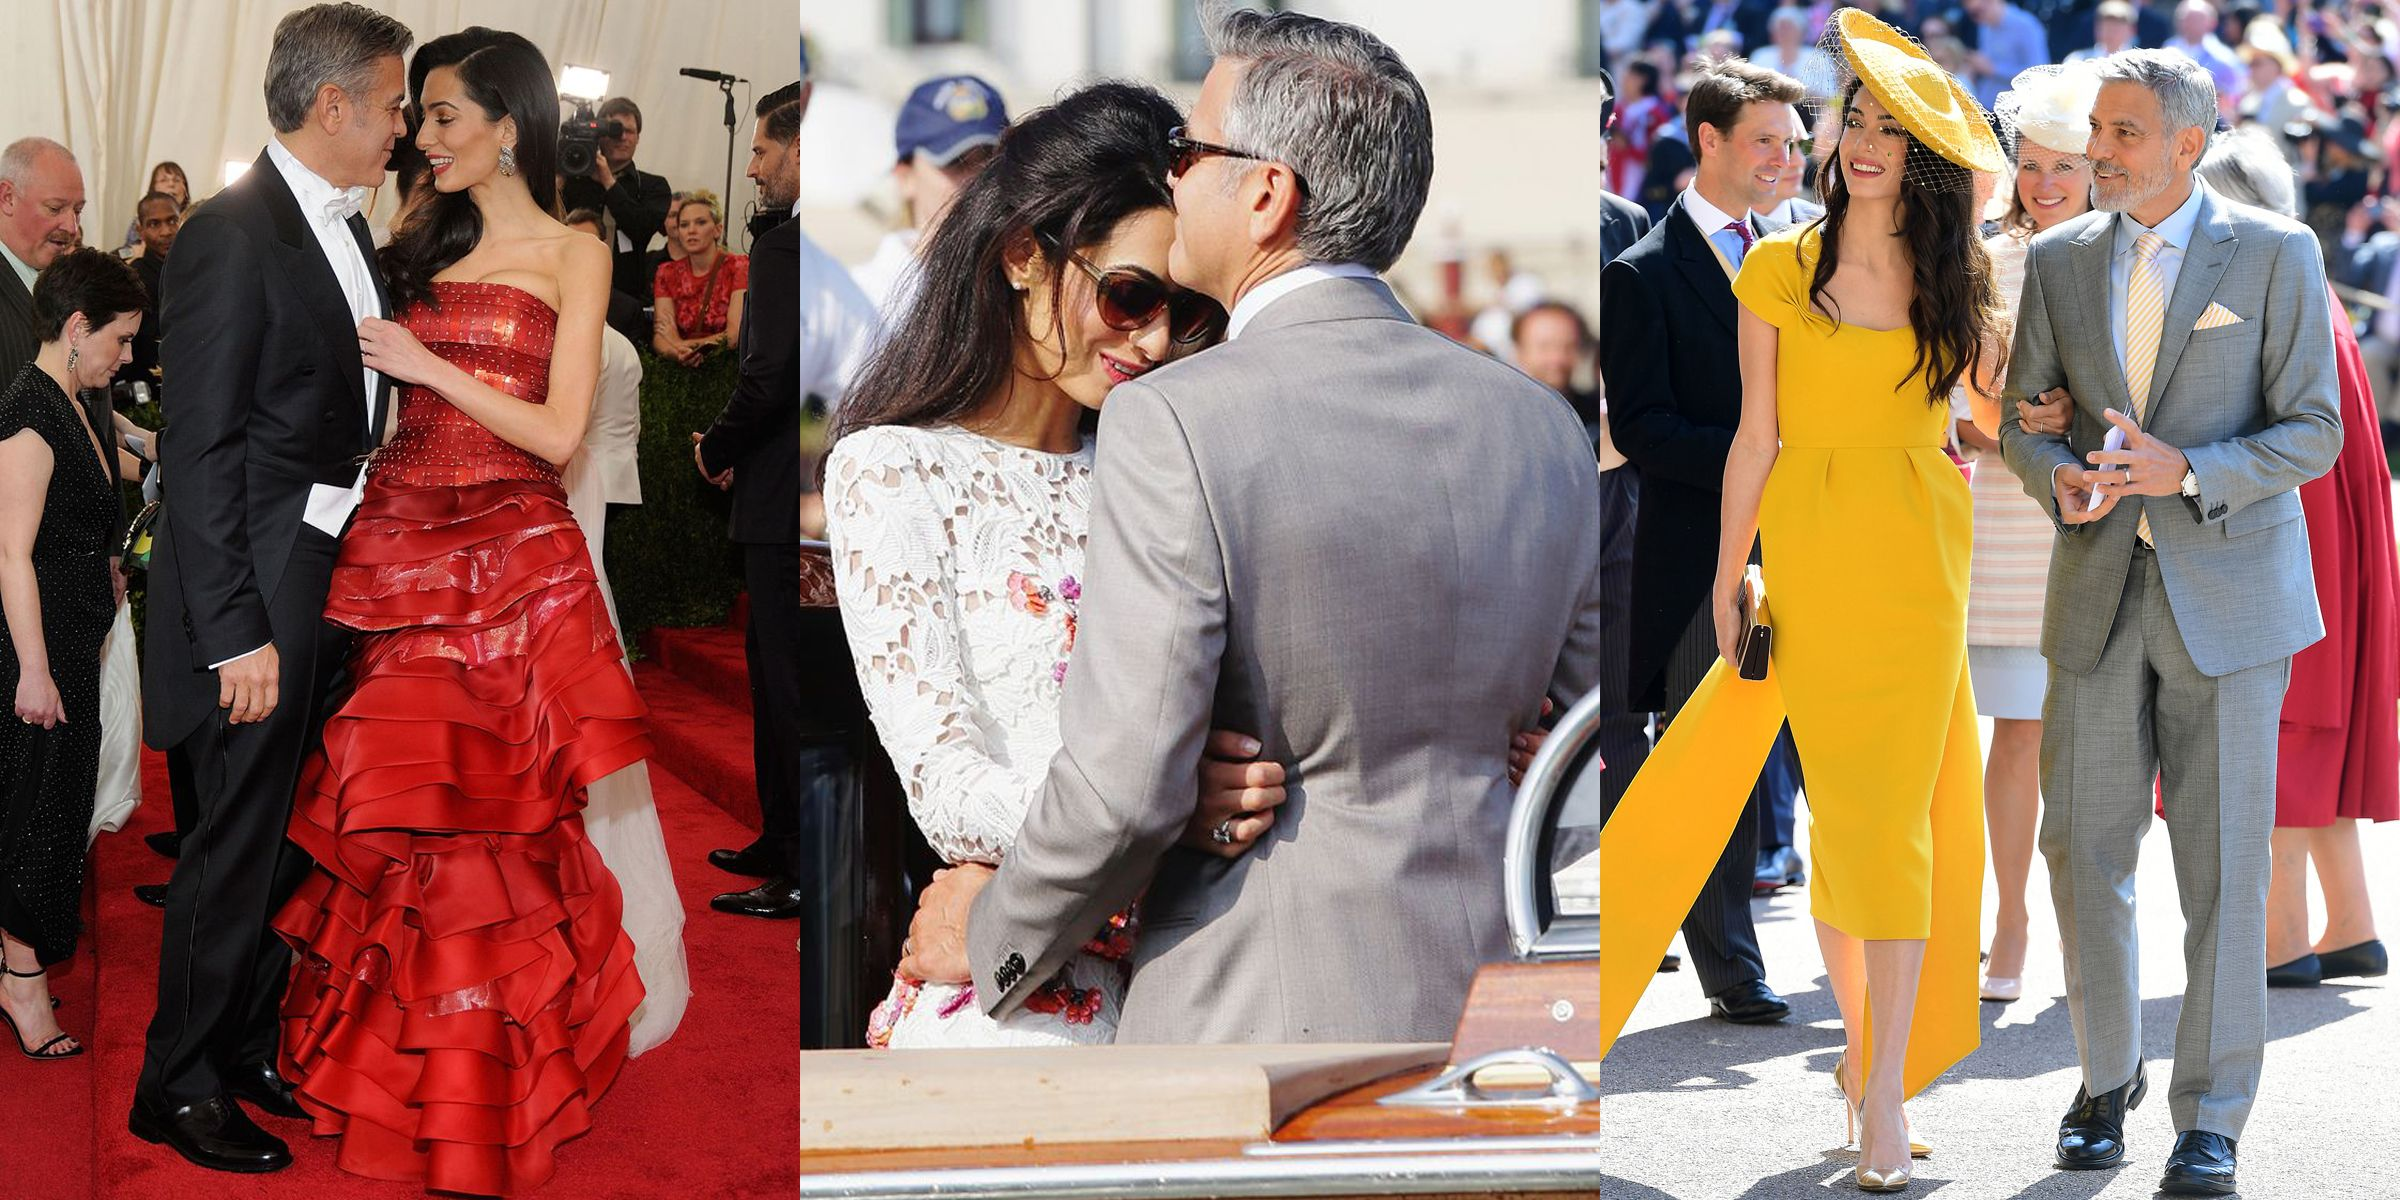 George and Amal Clooney's Cutest Moments - Photos of George and Amal